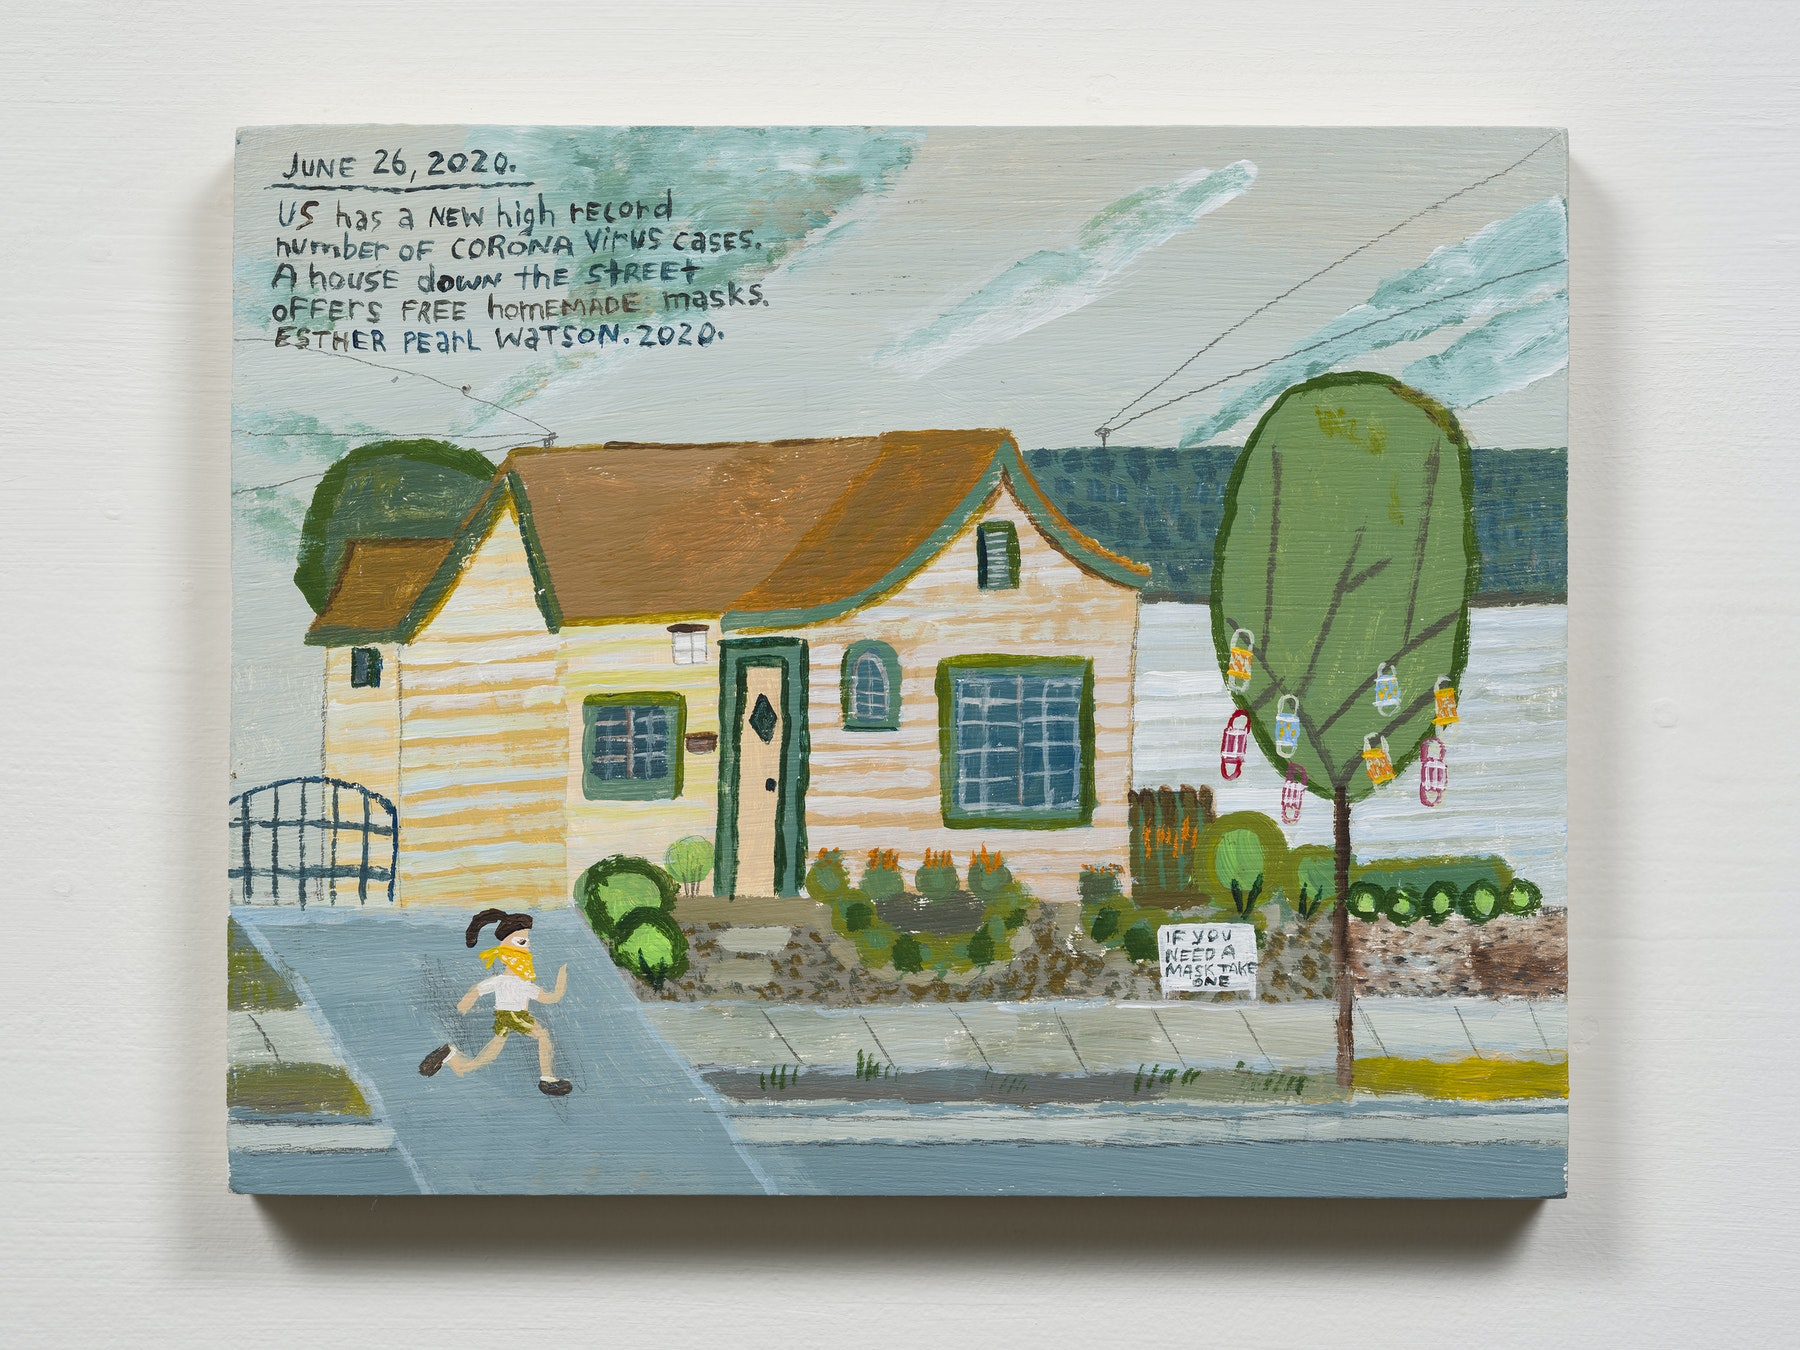 """Esther Pearl Watson """"June 26, House Offers Homemade Masks,"""" 2020 Acrylic with pencil on panel 8 x 10"""" [HxW] (20.32 x 25.4 cm) Inventory #EPW303 Courtesy of the artist and Vielmetter Los Angeles Photo credit: Jeff Mclane"""